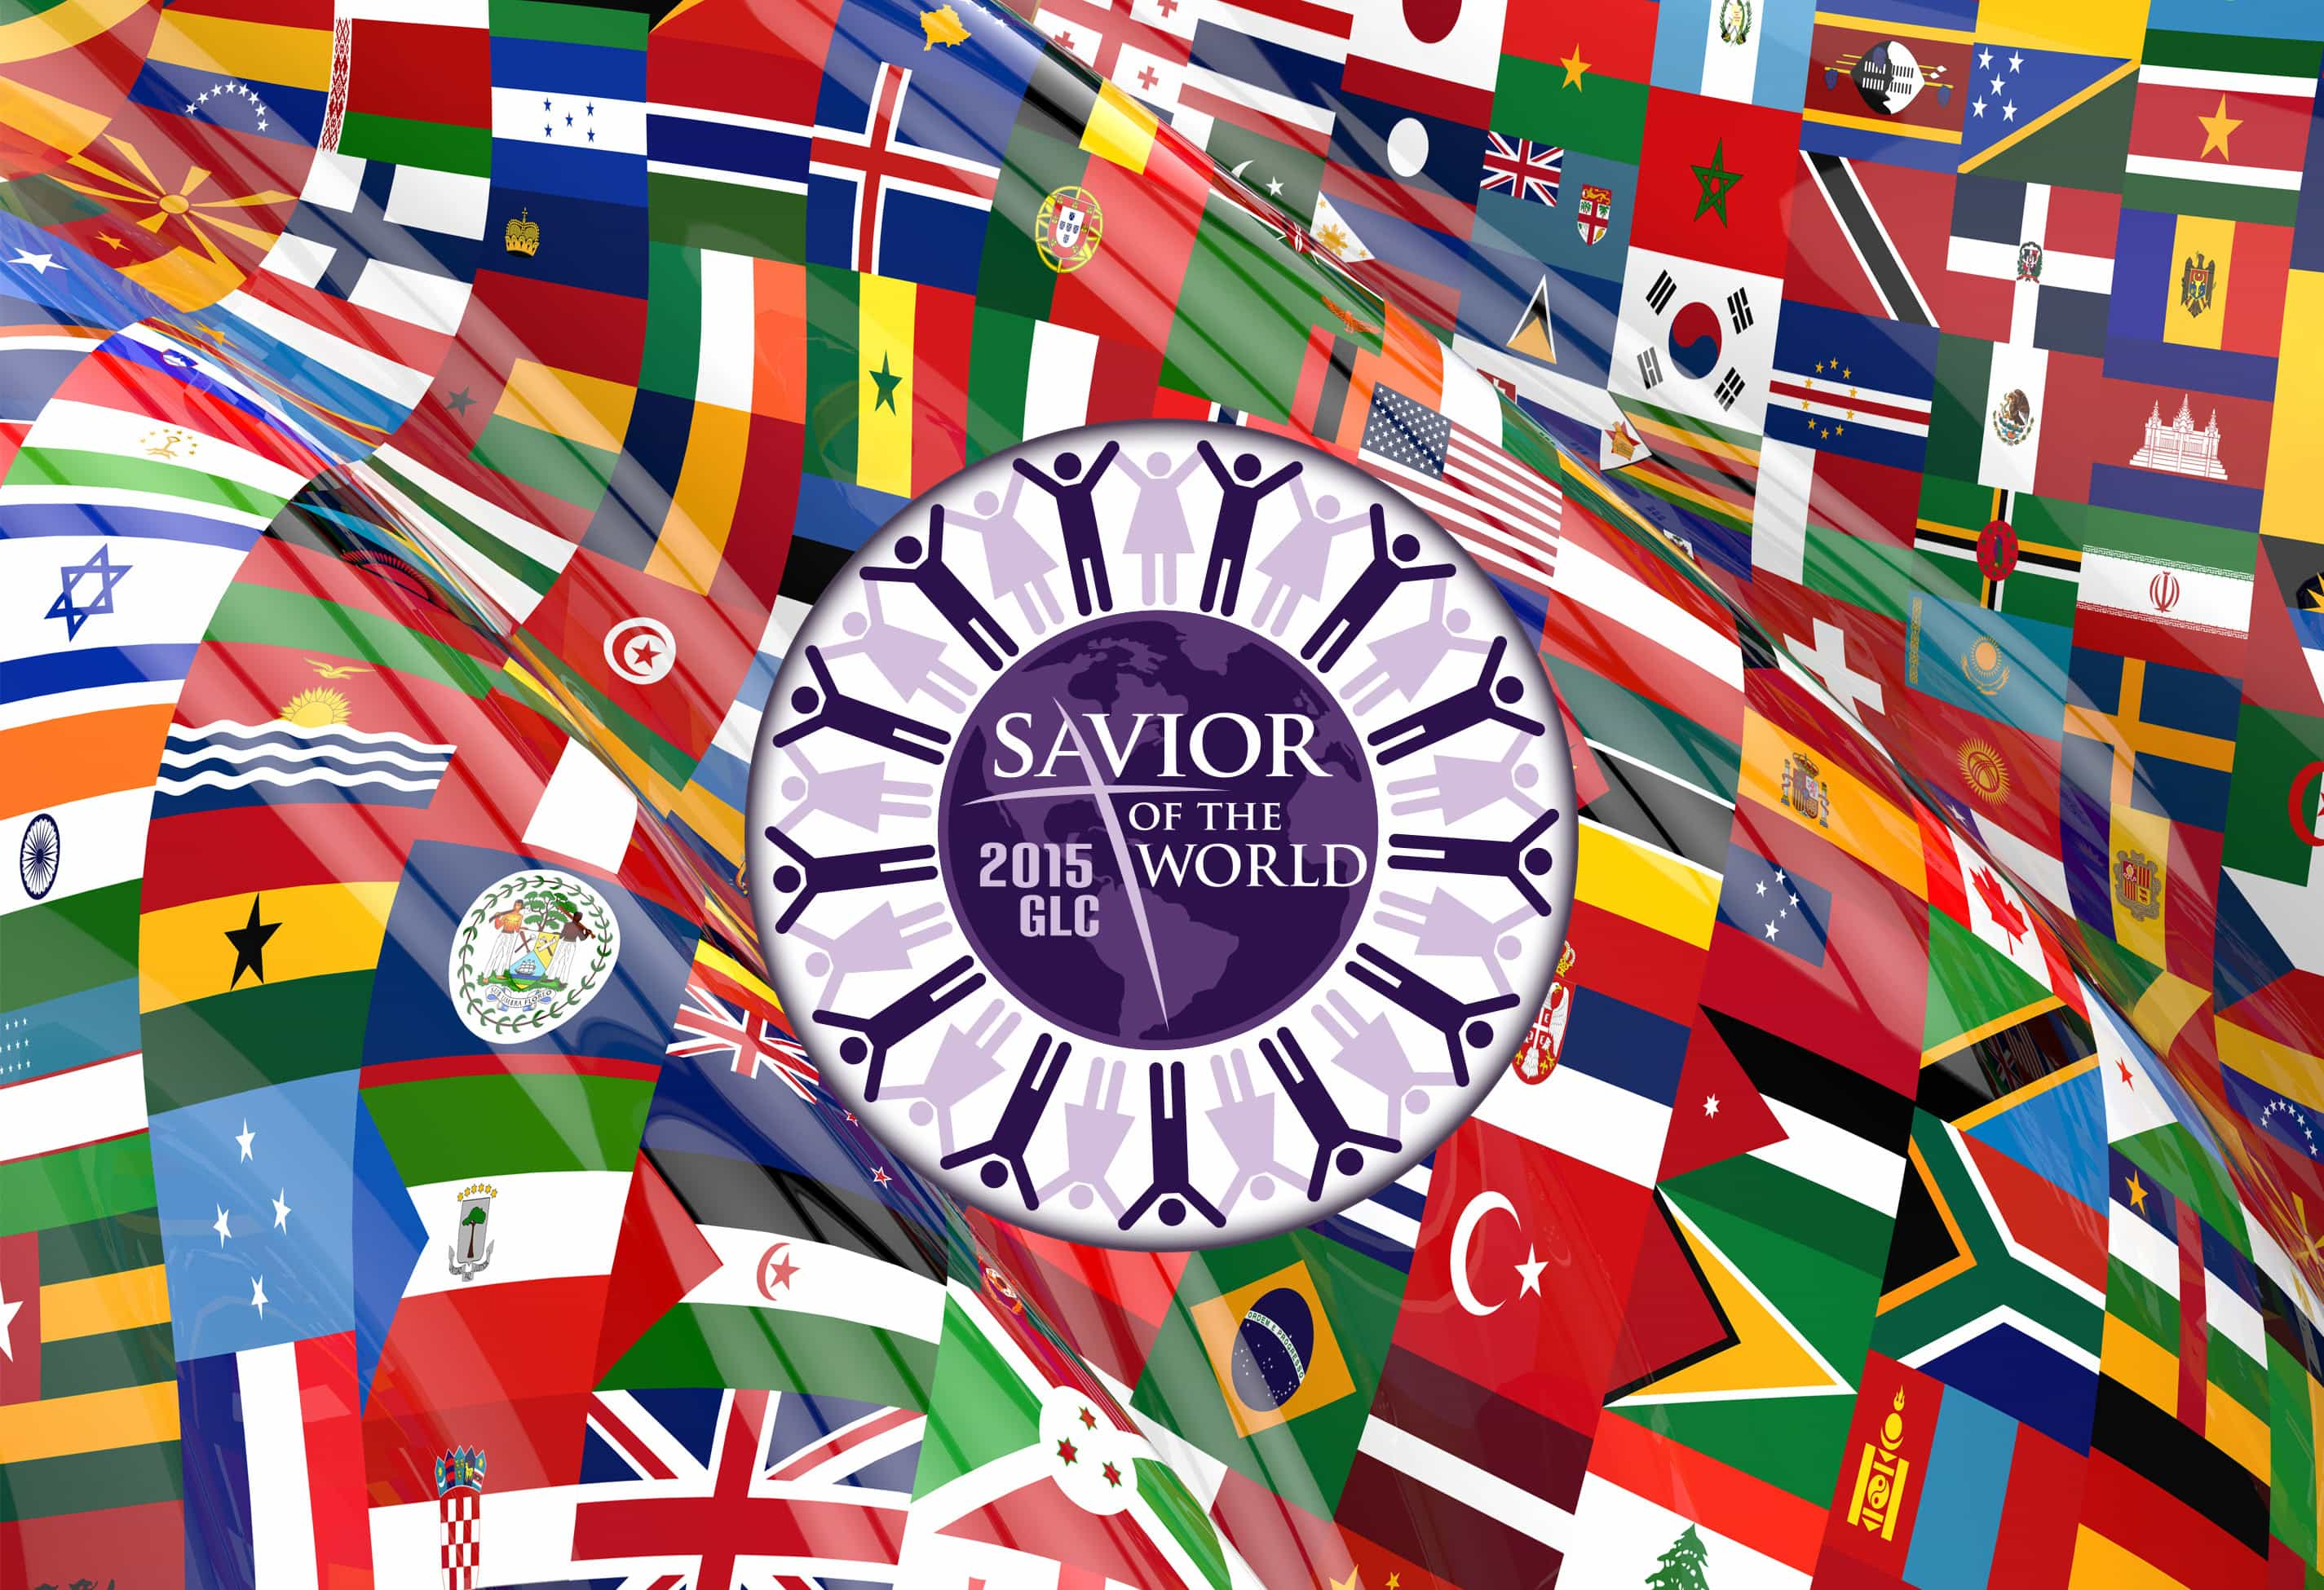 2015 Global Leadership Conference, The Savior of the World